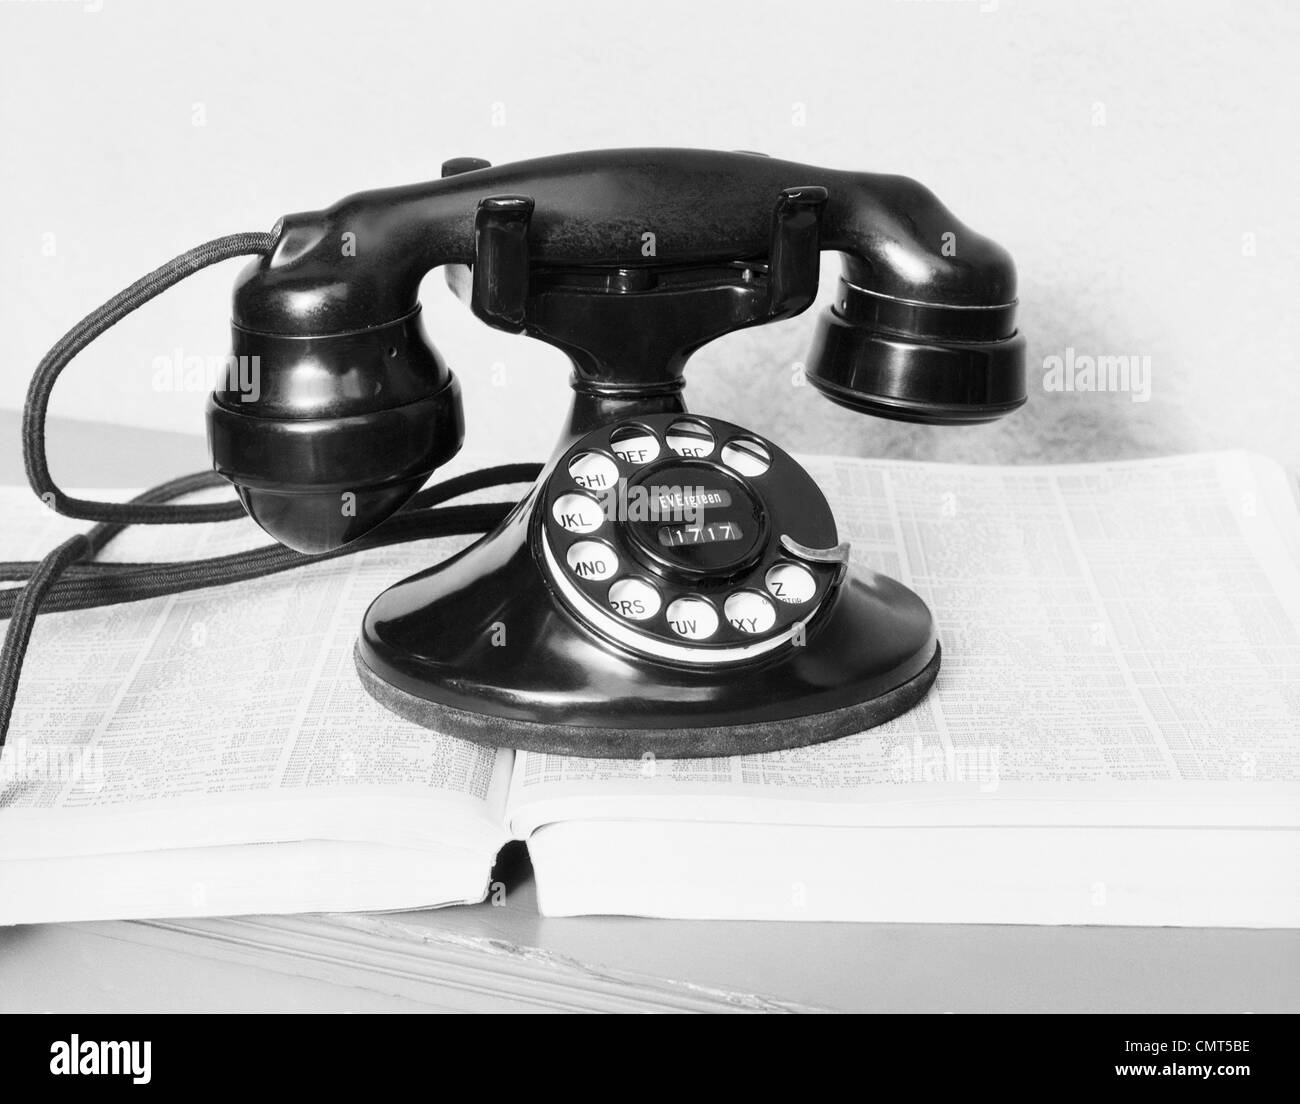 1930s OLD BLACK ROTARY DIAL CRADLE TELEPHONE ON OPEN TELEPHONE NUMBER DIRECTORY BOOK - Stock Image